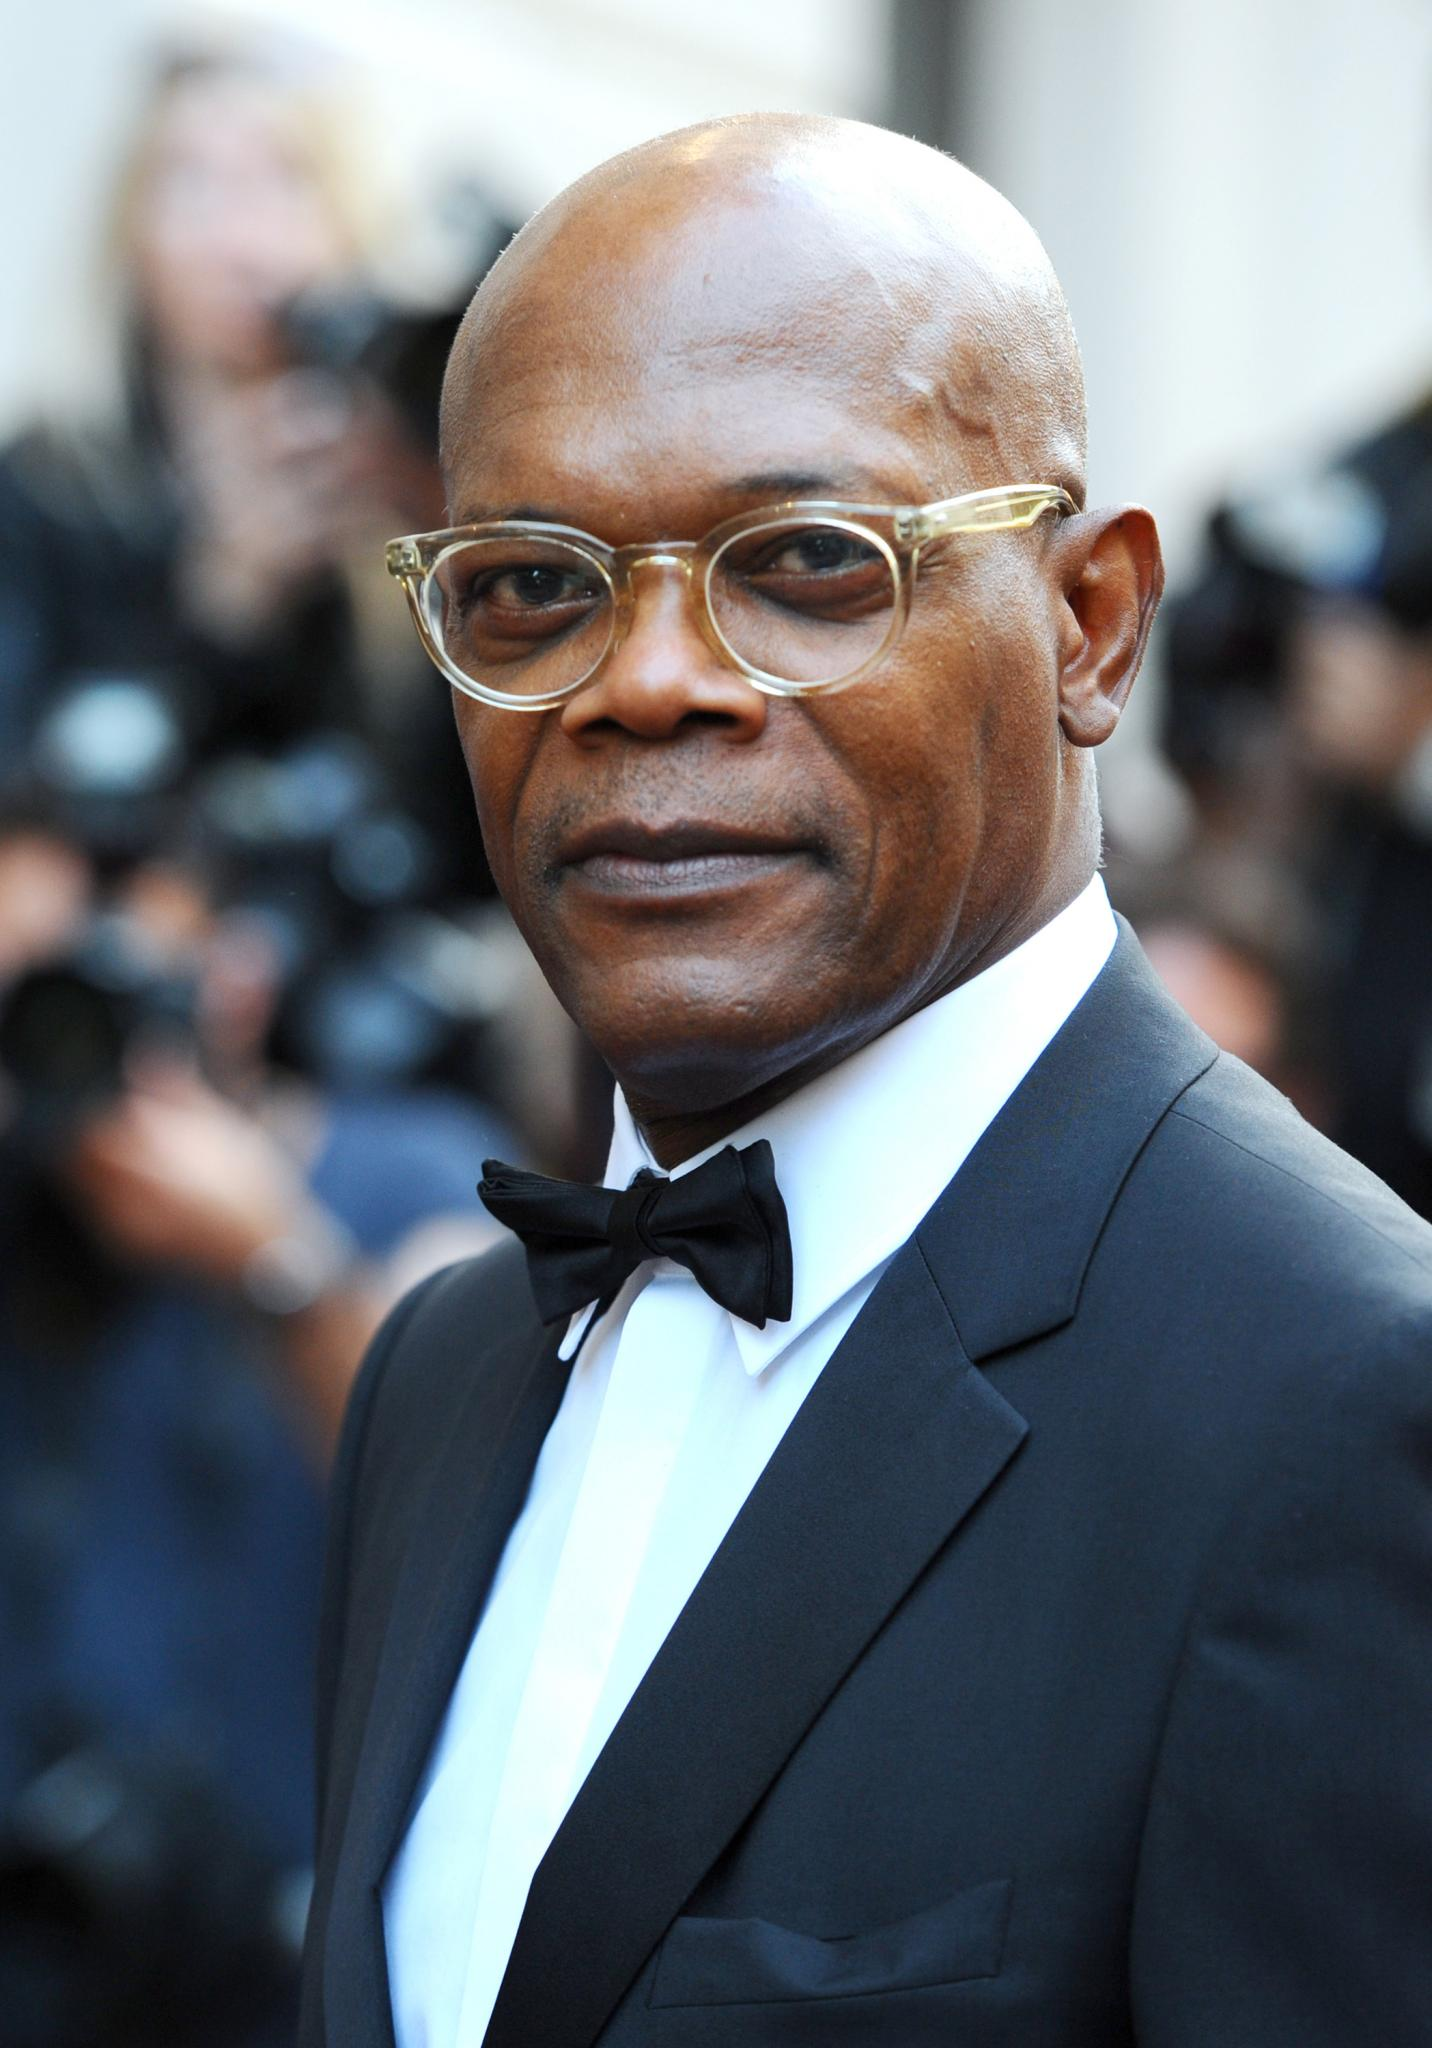 Samuel L. Jackson Thinks 'Get Out' Should Have Starred An American Actor